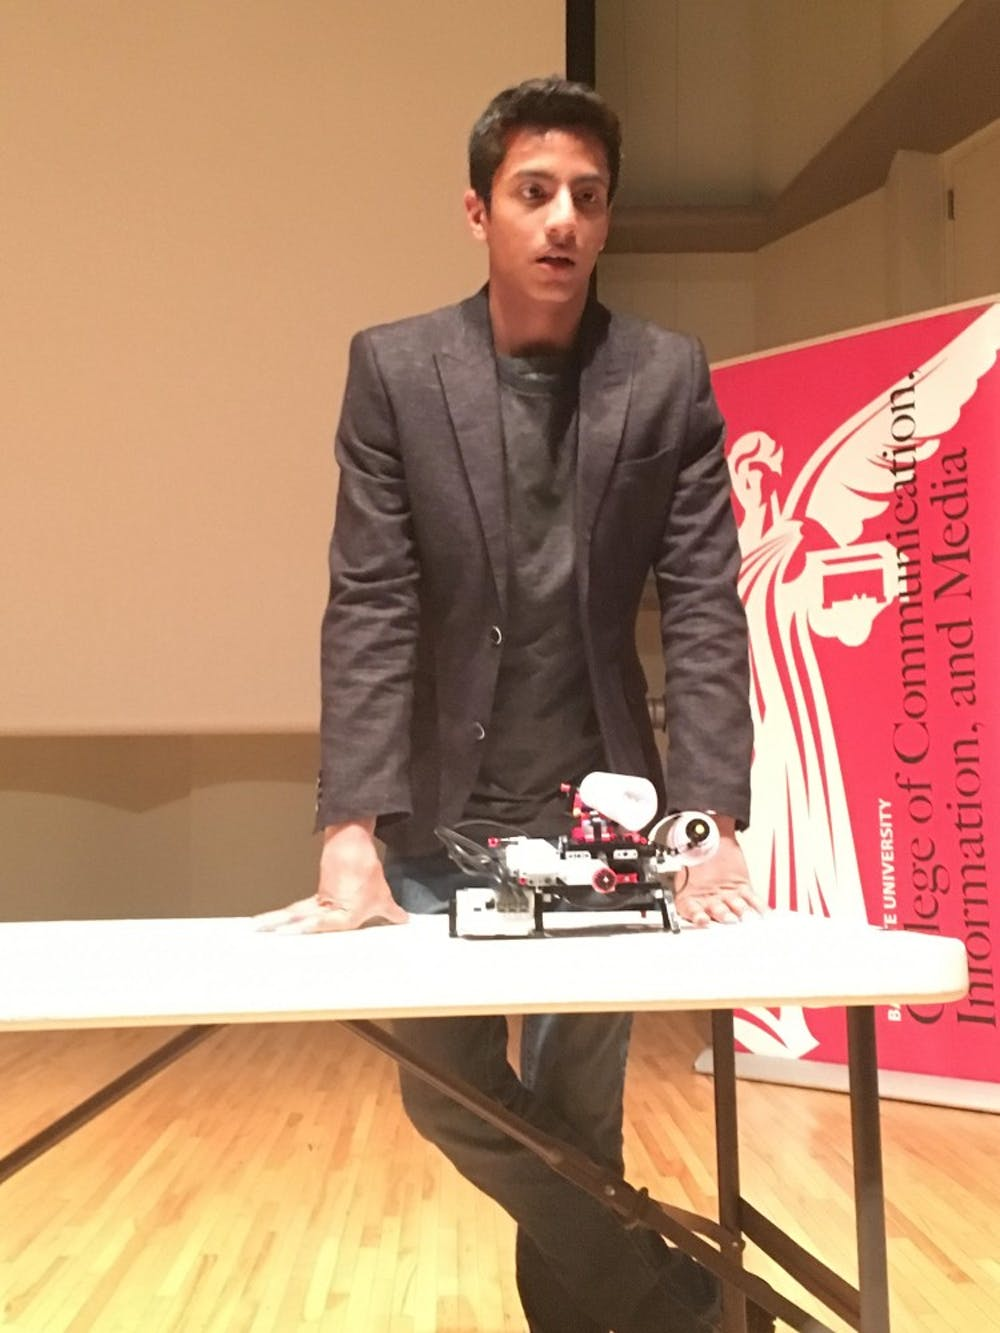 <p>Shubham Banerjee, a 14-year-old entrepreneur, spoke at Ball State on March 30. DN PHOTO MICHELLE KAUFMAN</p>